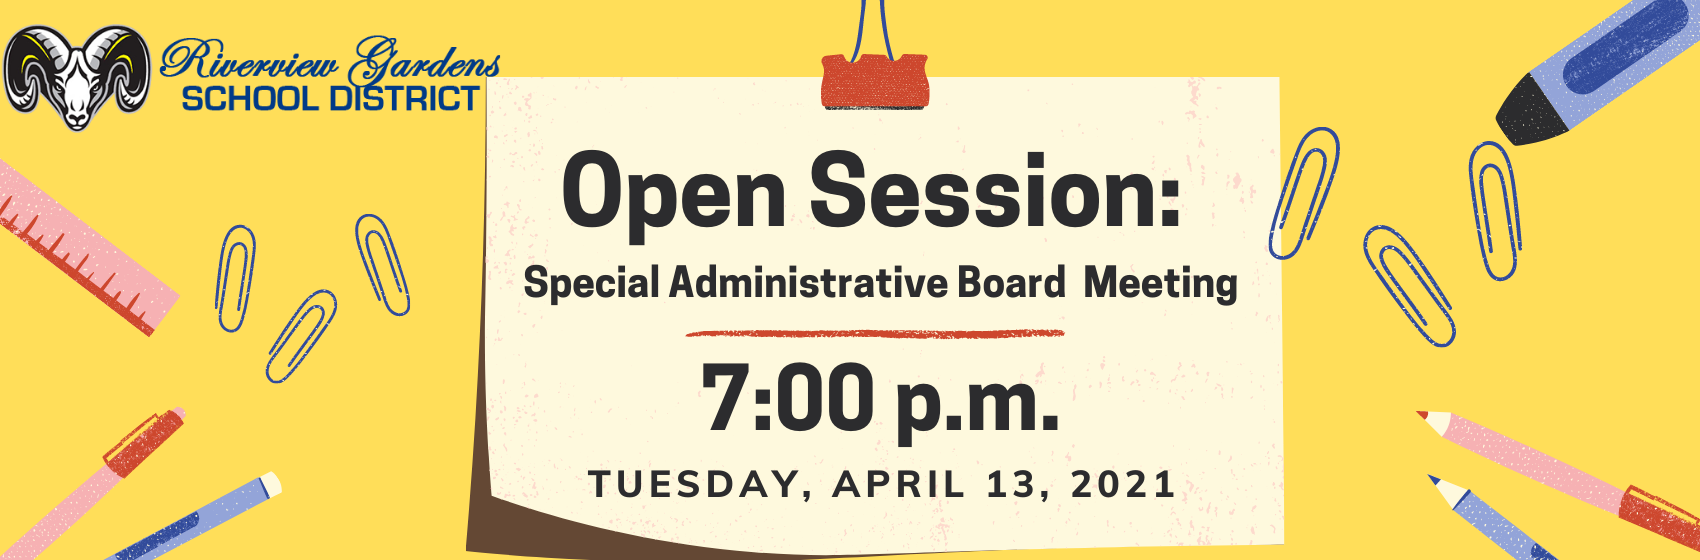 Open Meeting Special Administrative Board